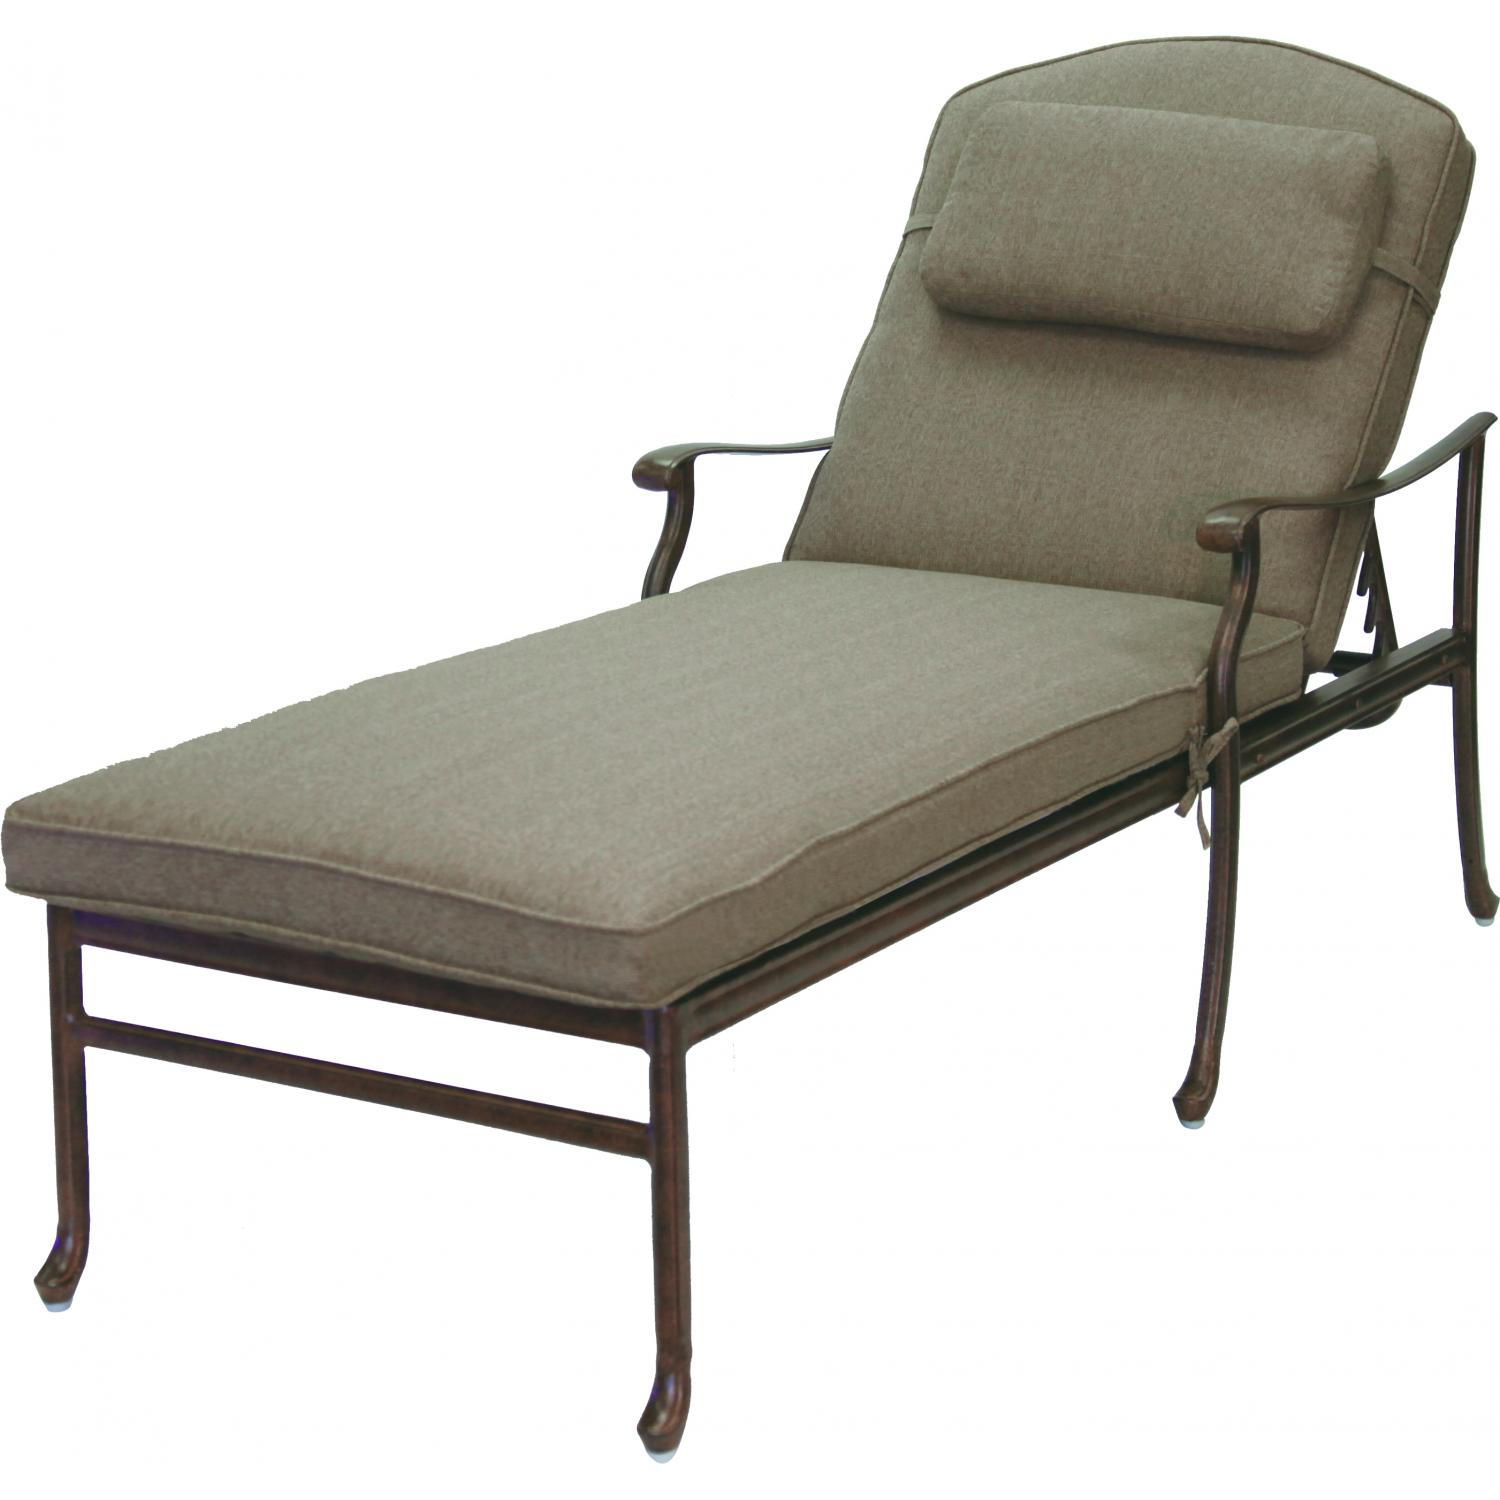 Darlee sedona cast aluminum patio chaise lounge antique for Bronze chaise lounge